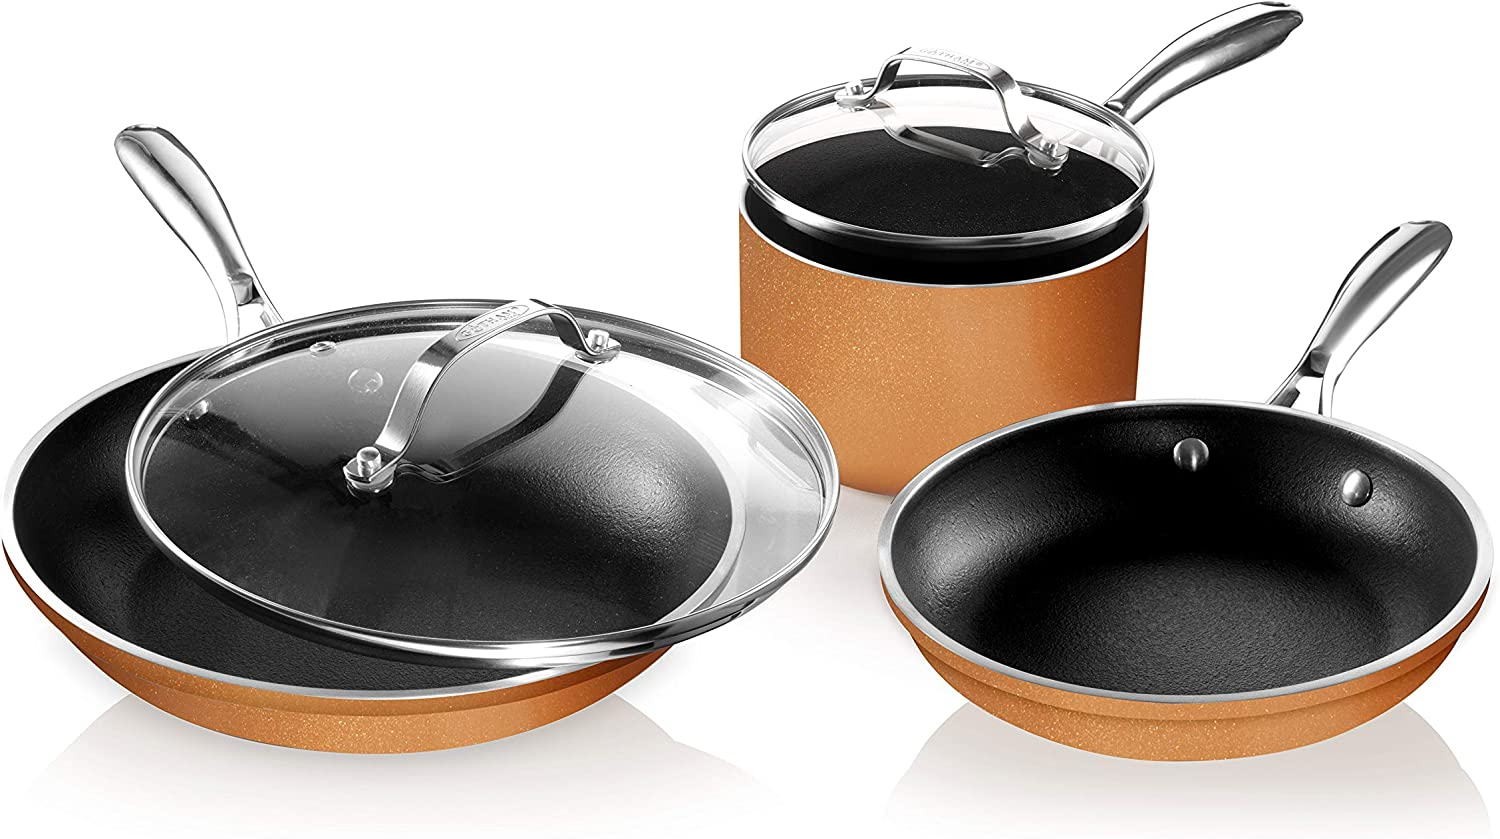 Gotham Steel Copper Cast 5 Piece Pots and Pans Set with Ultra Nonstick & Durable Iron Texture, 100% PFOA Free, Open Skillet with Stay Cool Stainless Steel Handle, Oven & Dishwasher Safe, As Seen on TV